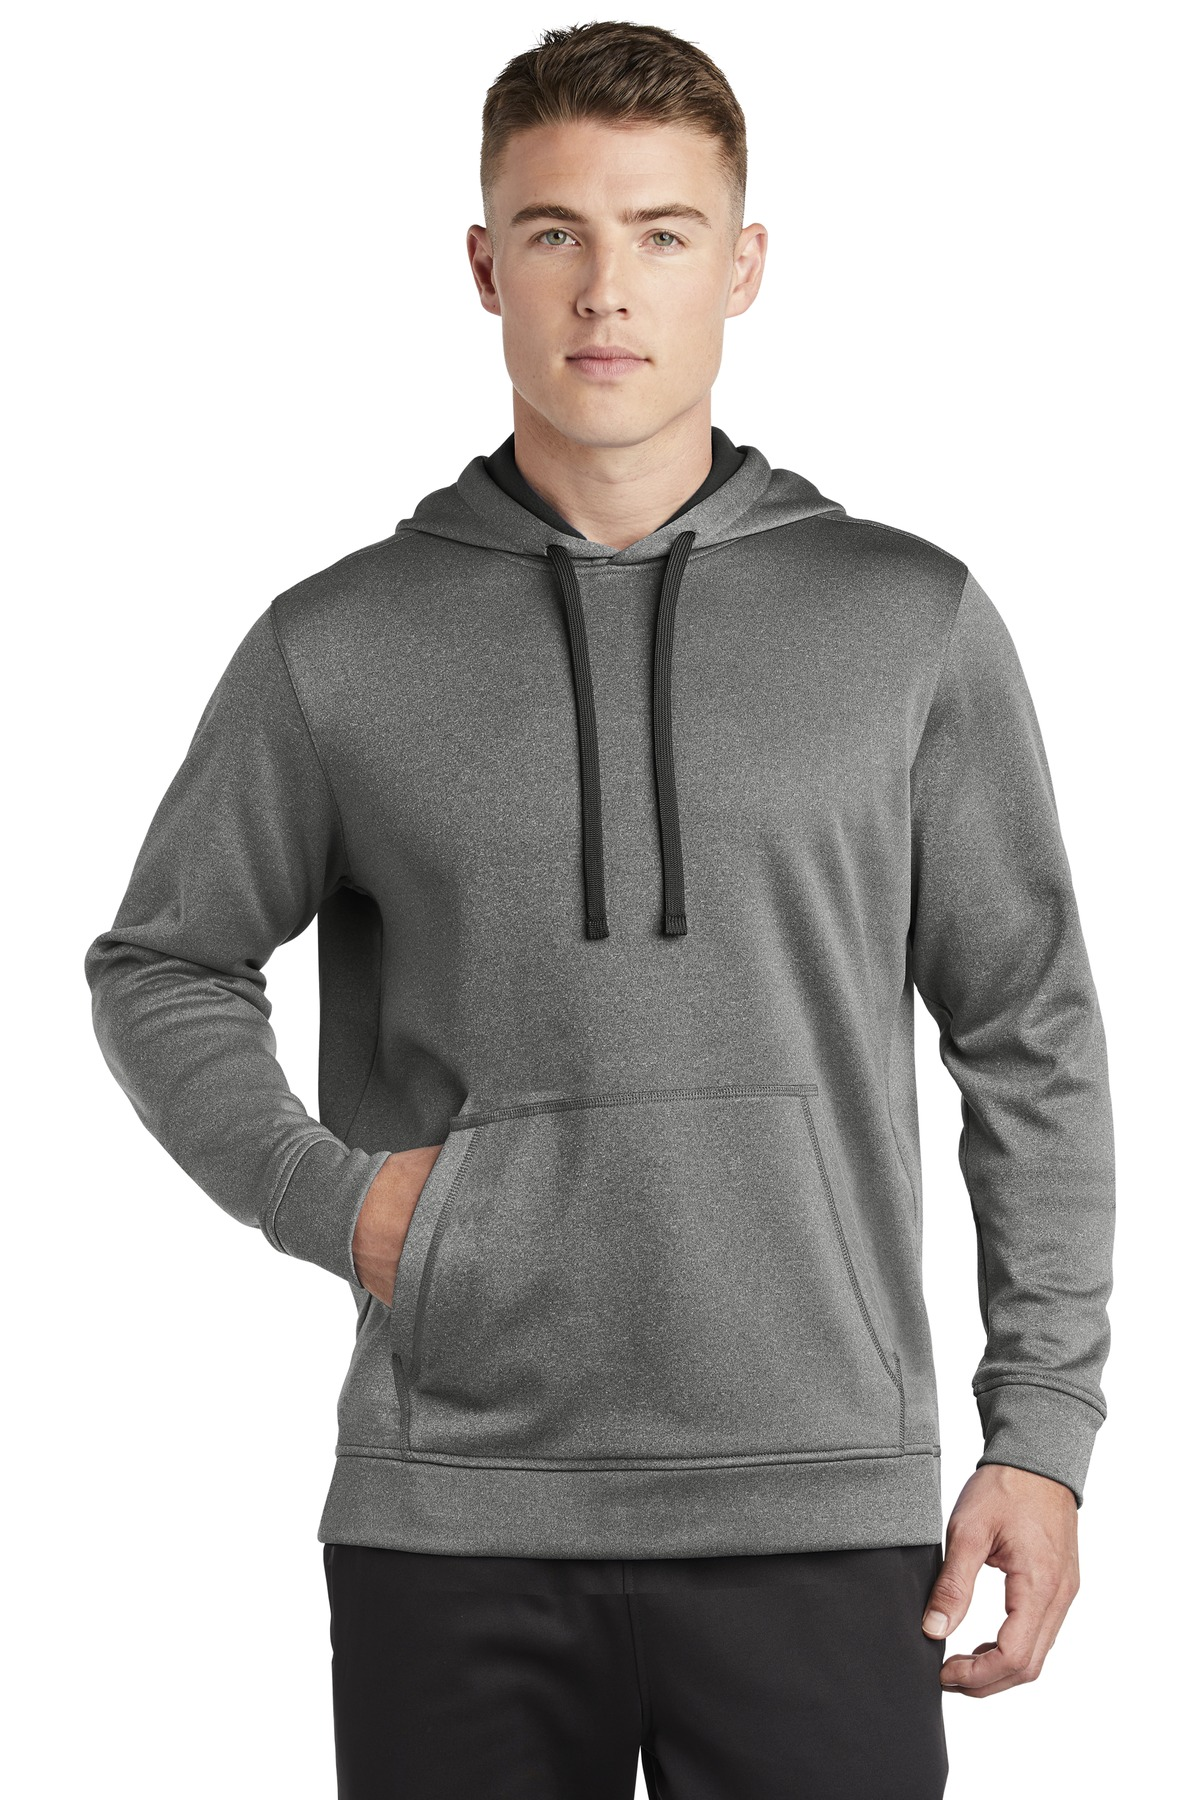 Sport-Tek  ®  PosiCharge  ®  Sport-Wick  ®  Heather Fleece Hooded Pullover. ST264 - Black Heather